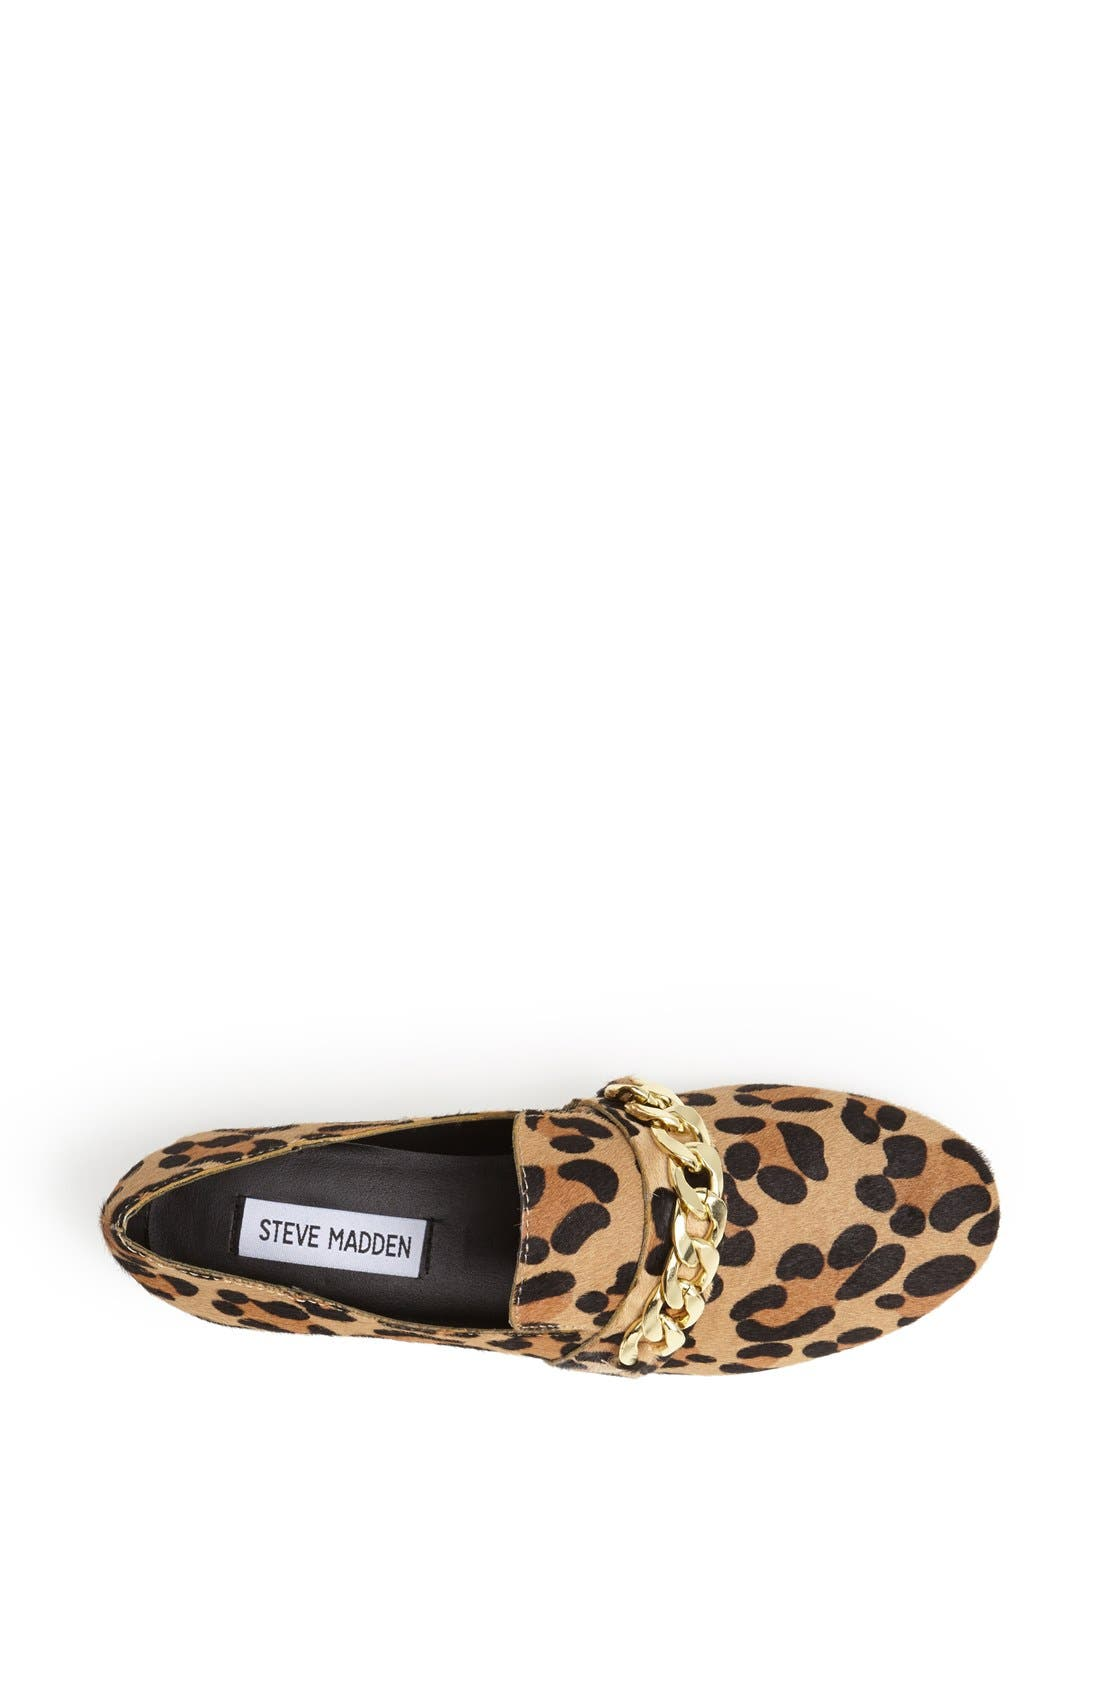 Alternate Image 3  - Steve Madden 'Chaingng' Calf Hair Flat